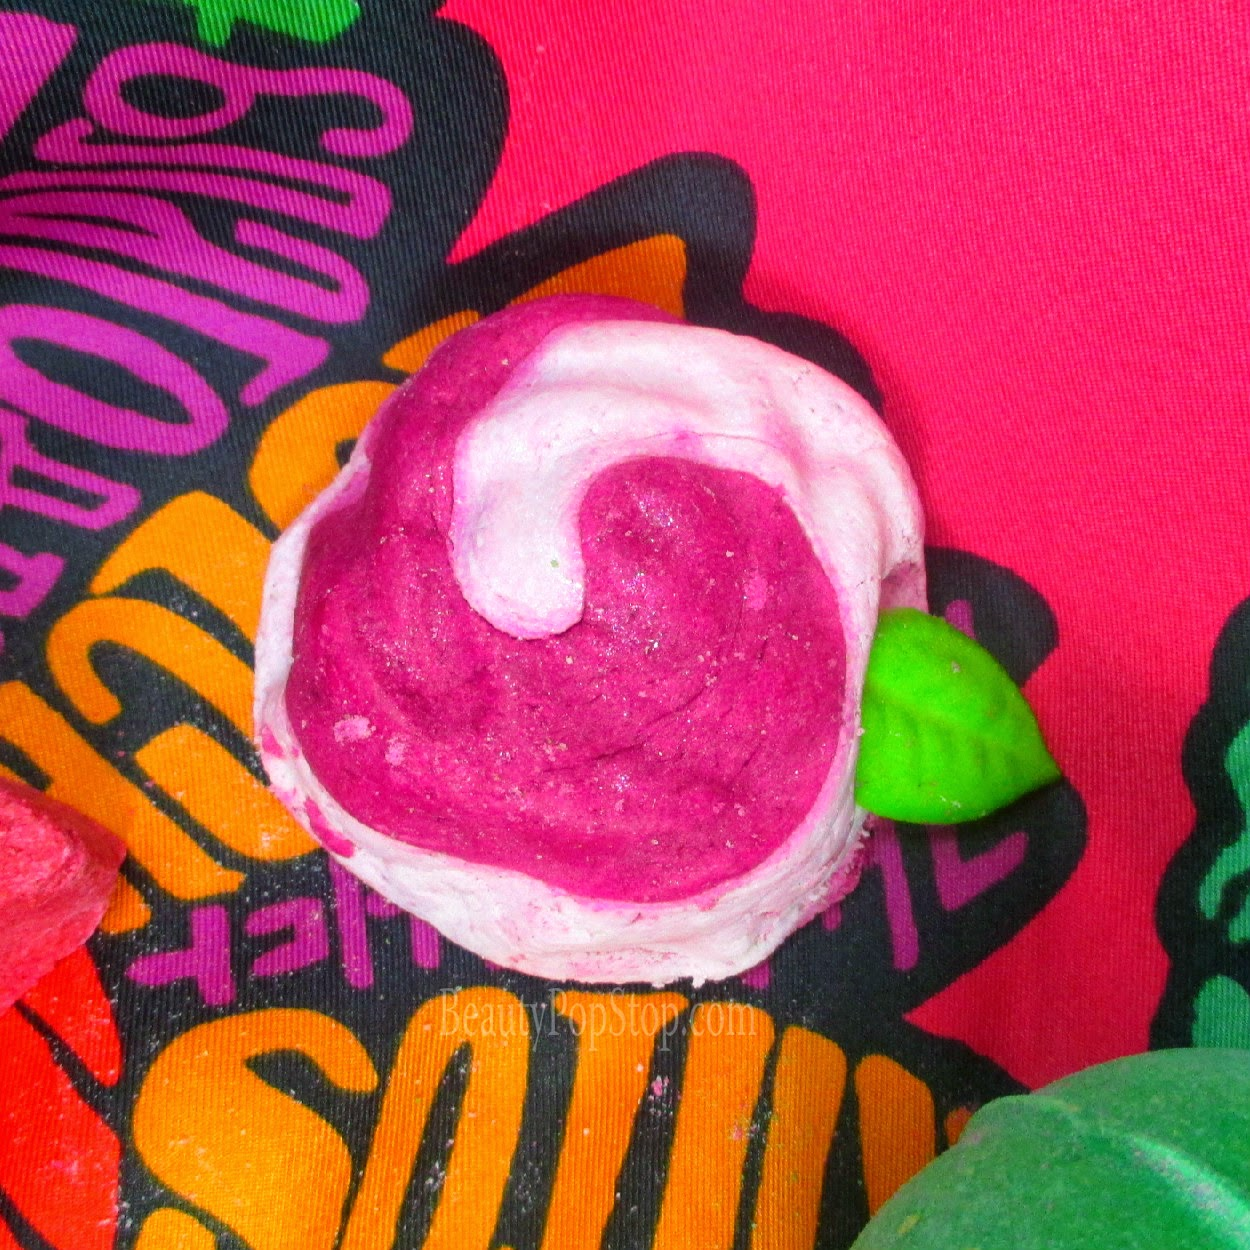 lush vegan rose bubble bar review